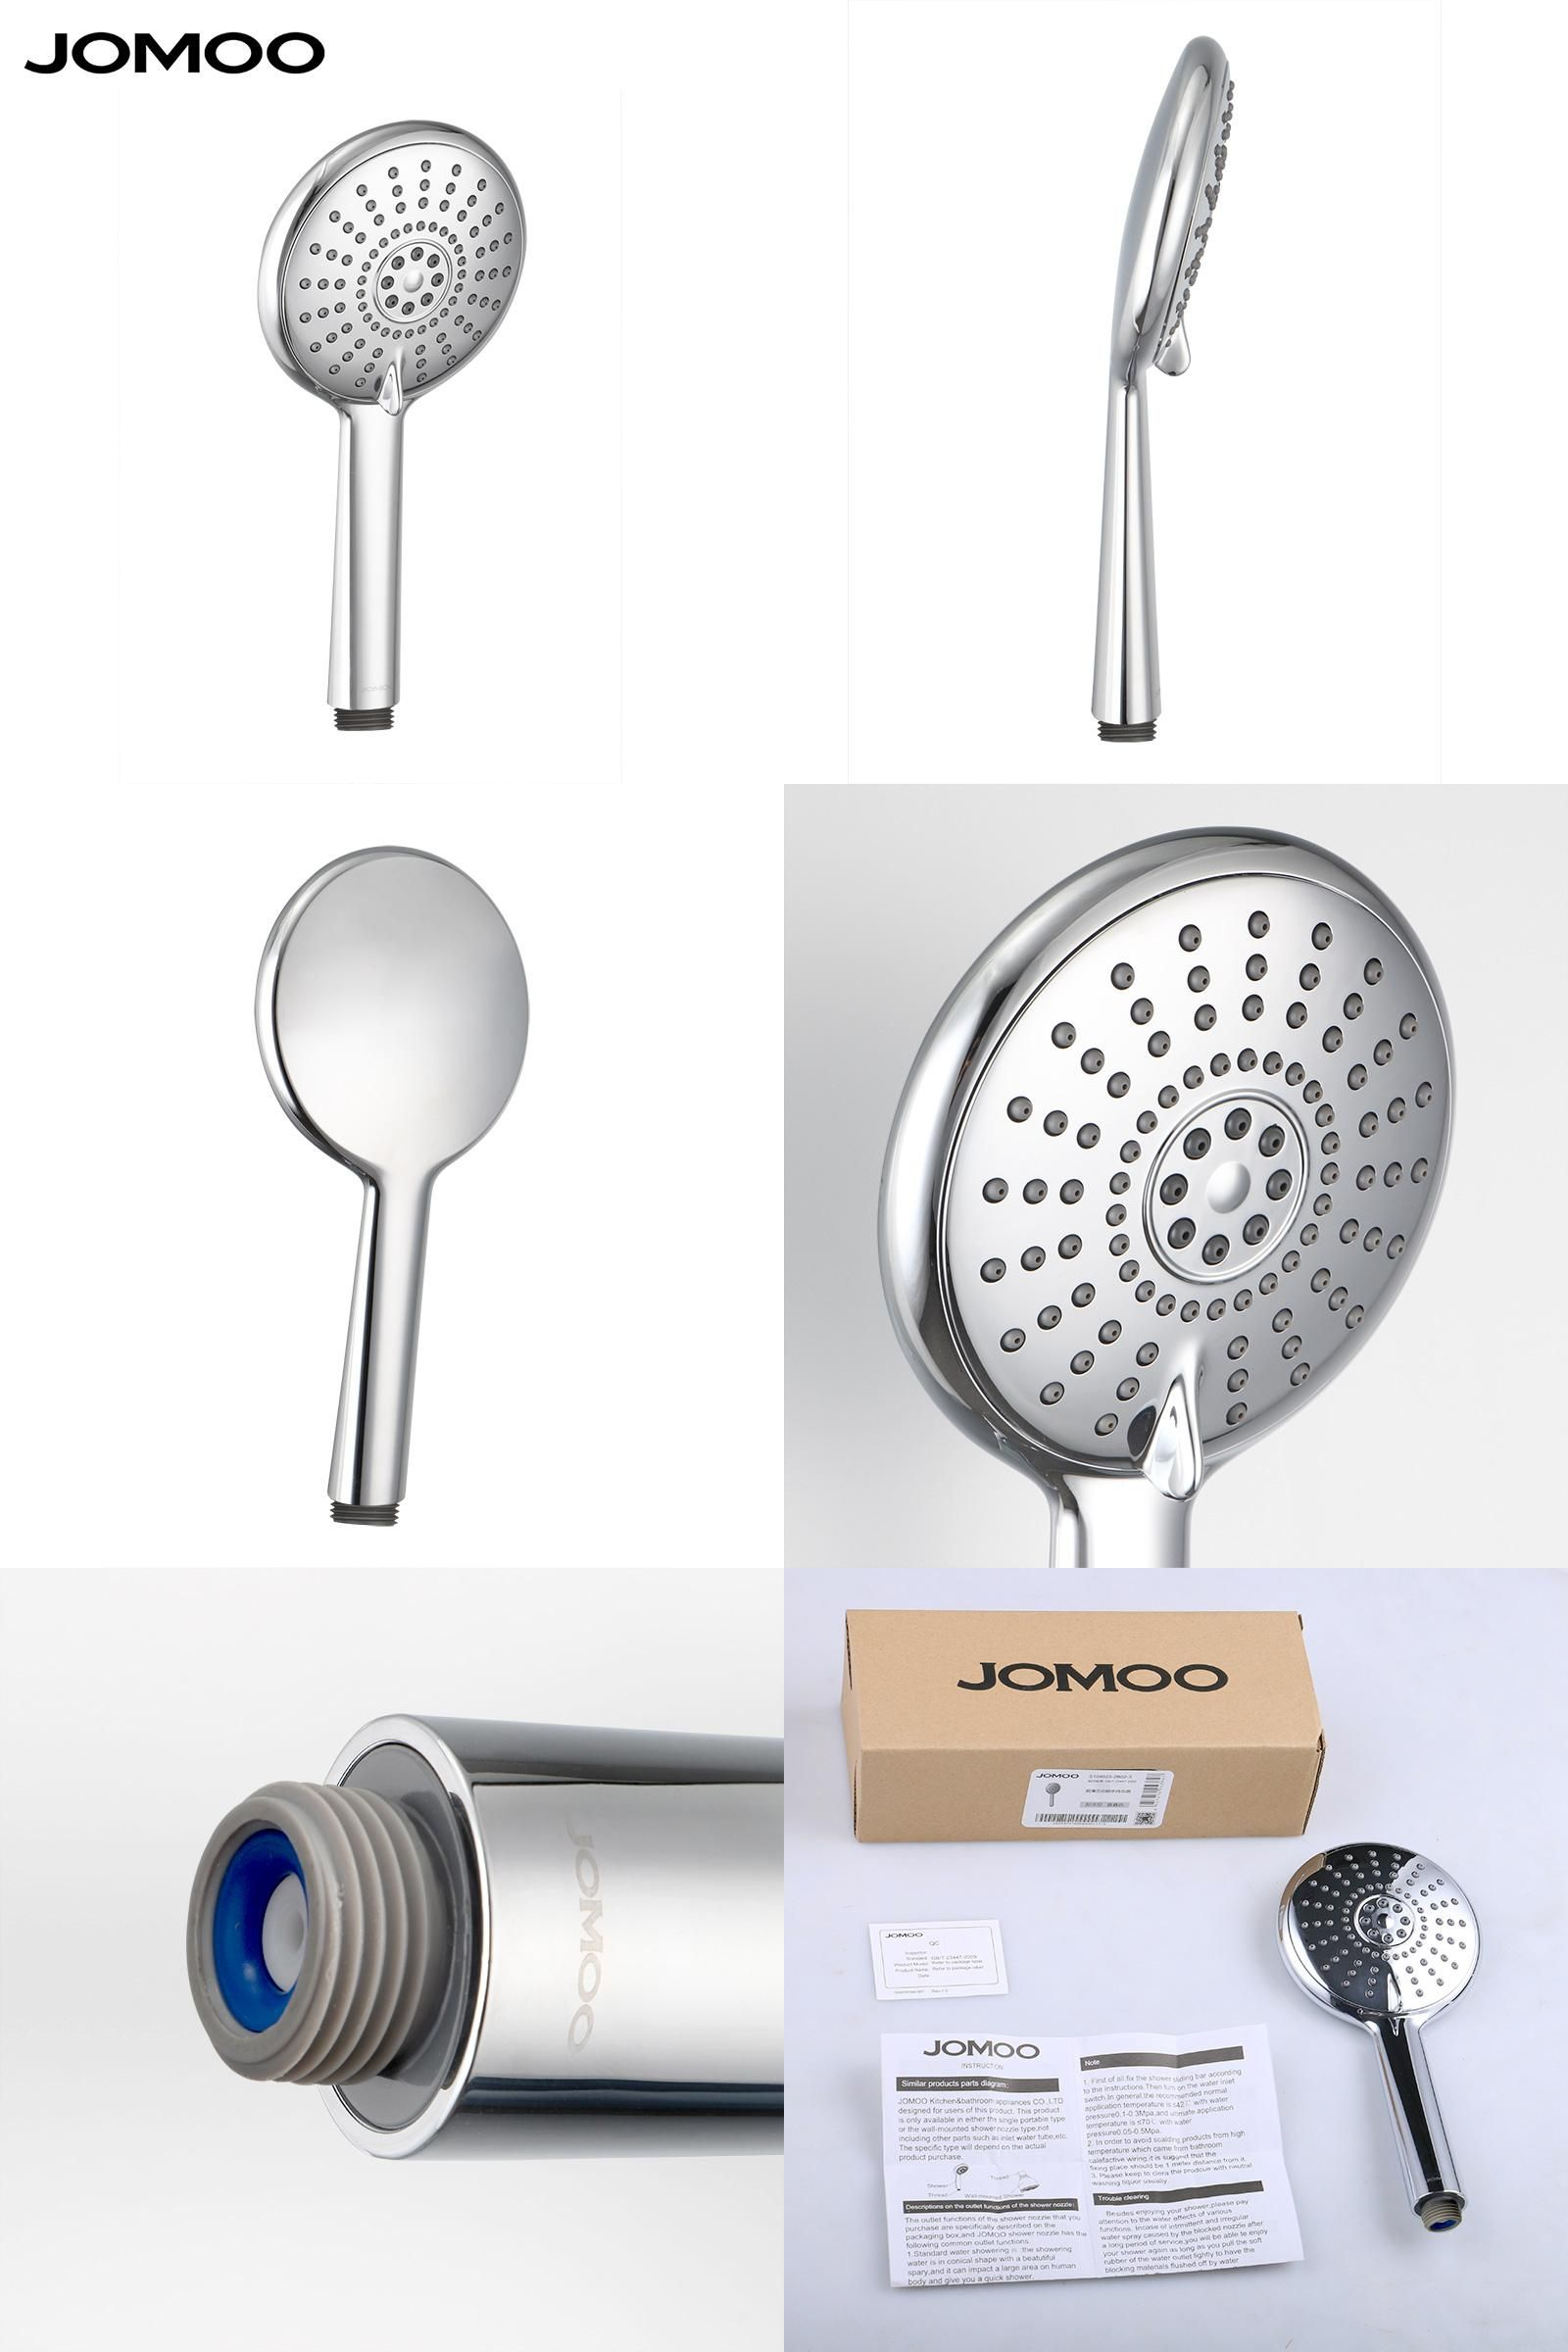 Visit to Buy] JOMOO Multi-function ABS Chrome Plated Shower Head Air ...